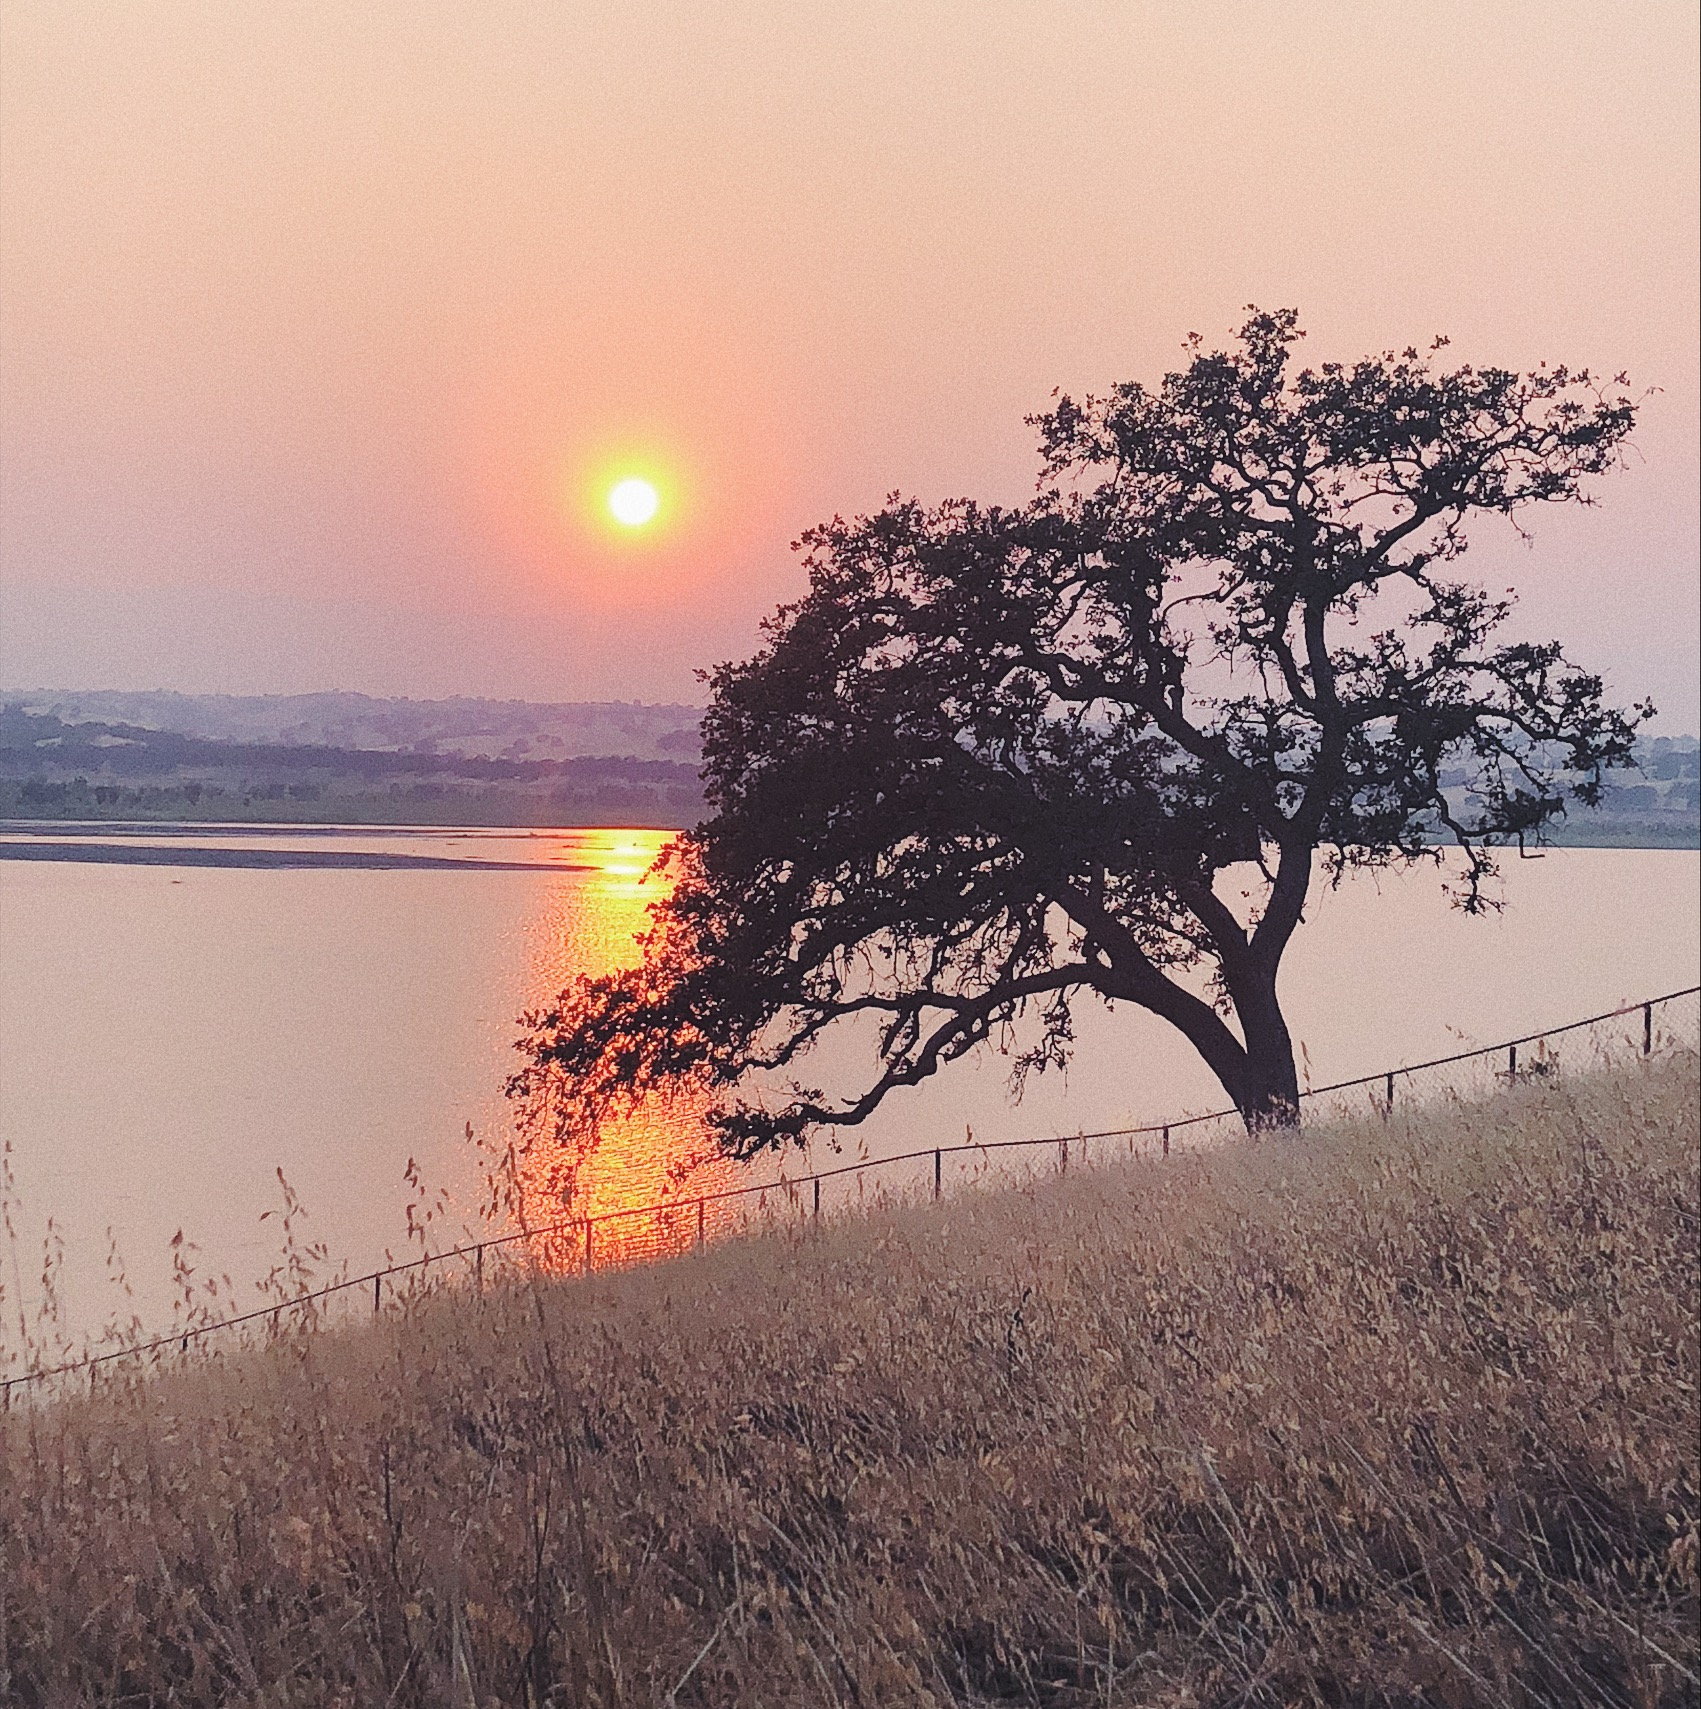 The sun setting over the lake at Orland Buttes.